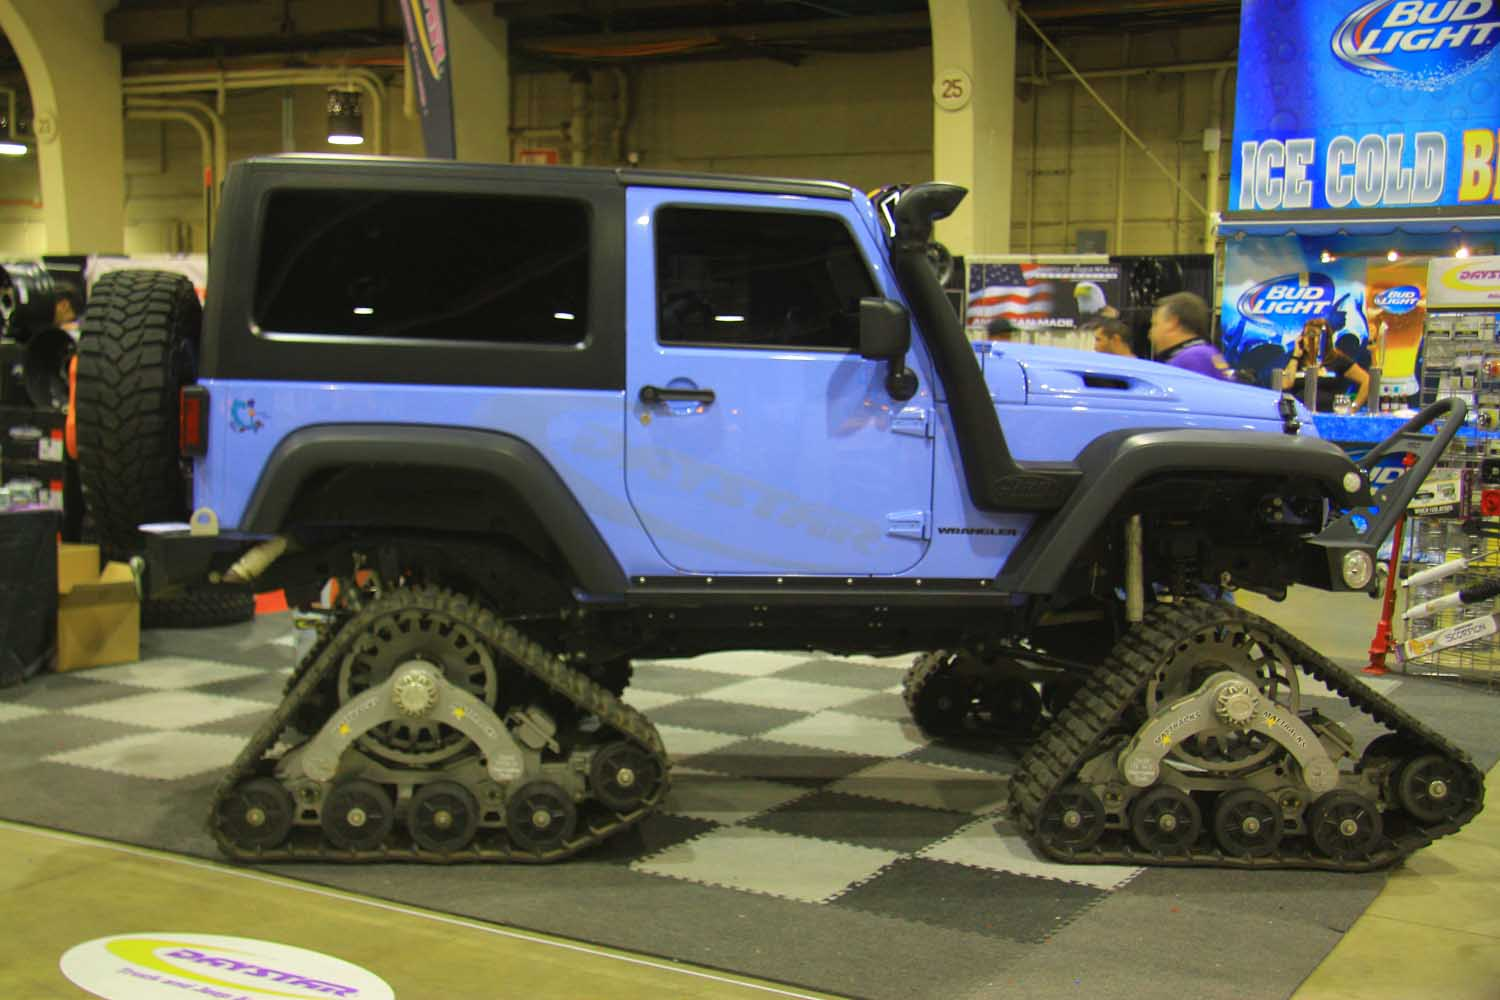 63 Daystar Jeep Wrangler JK with tracks